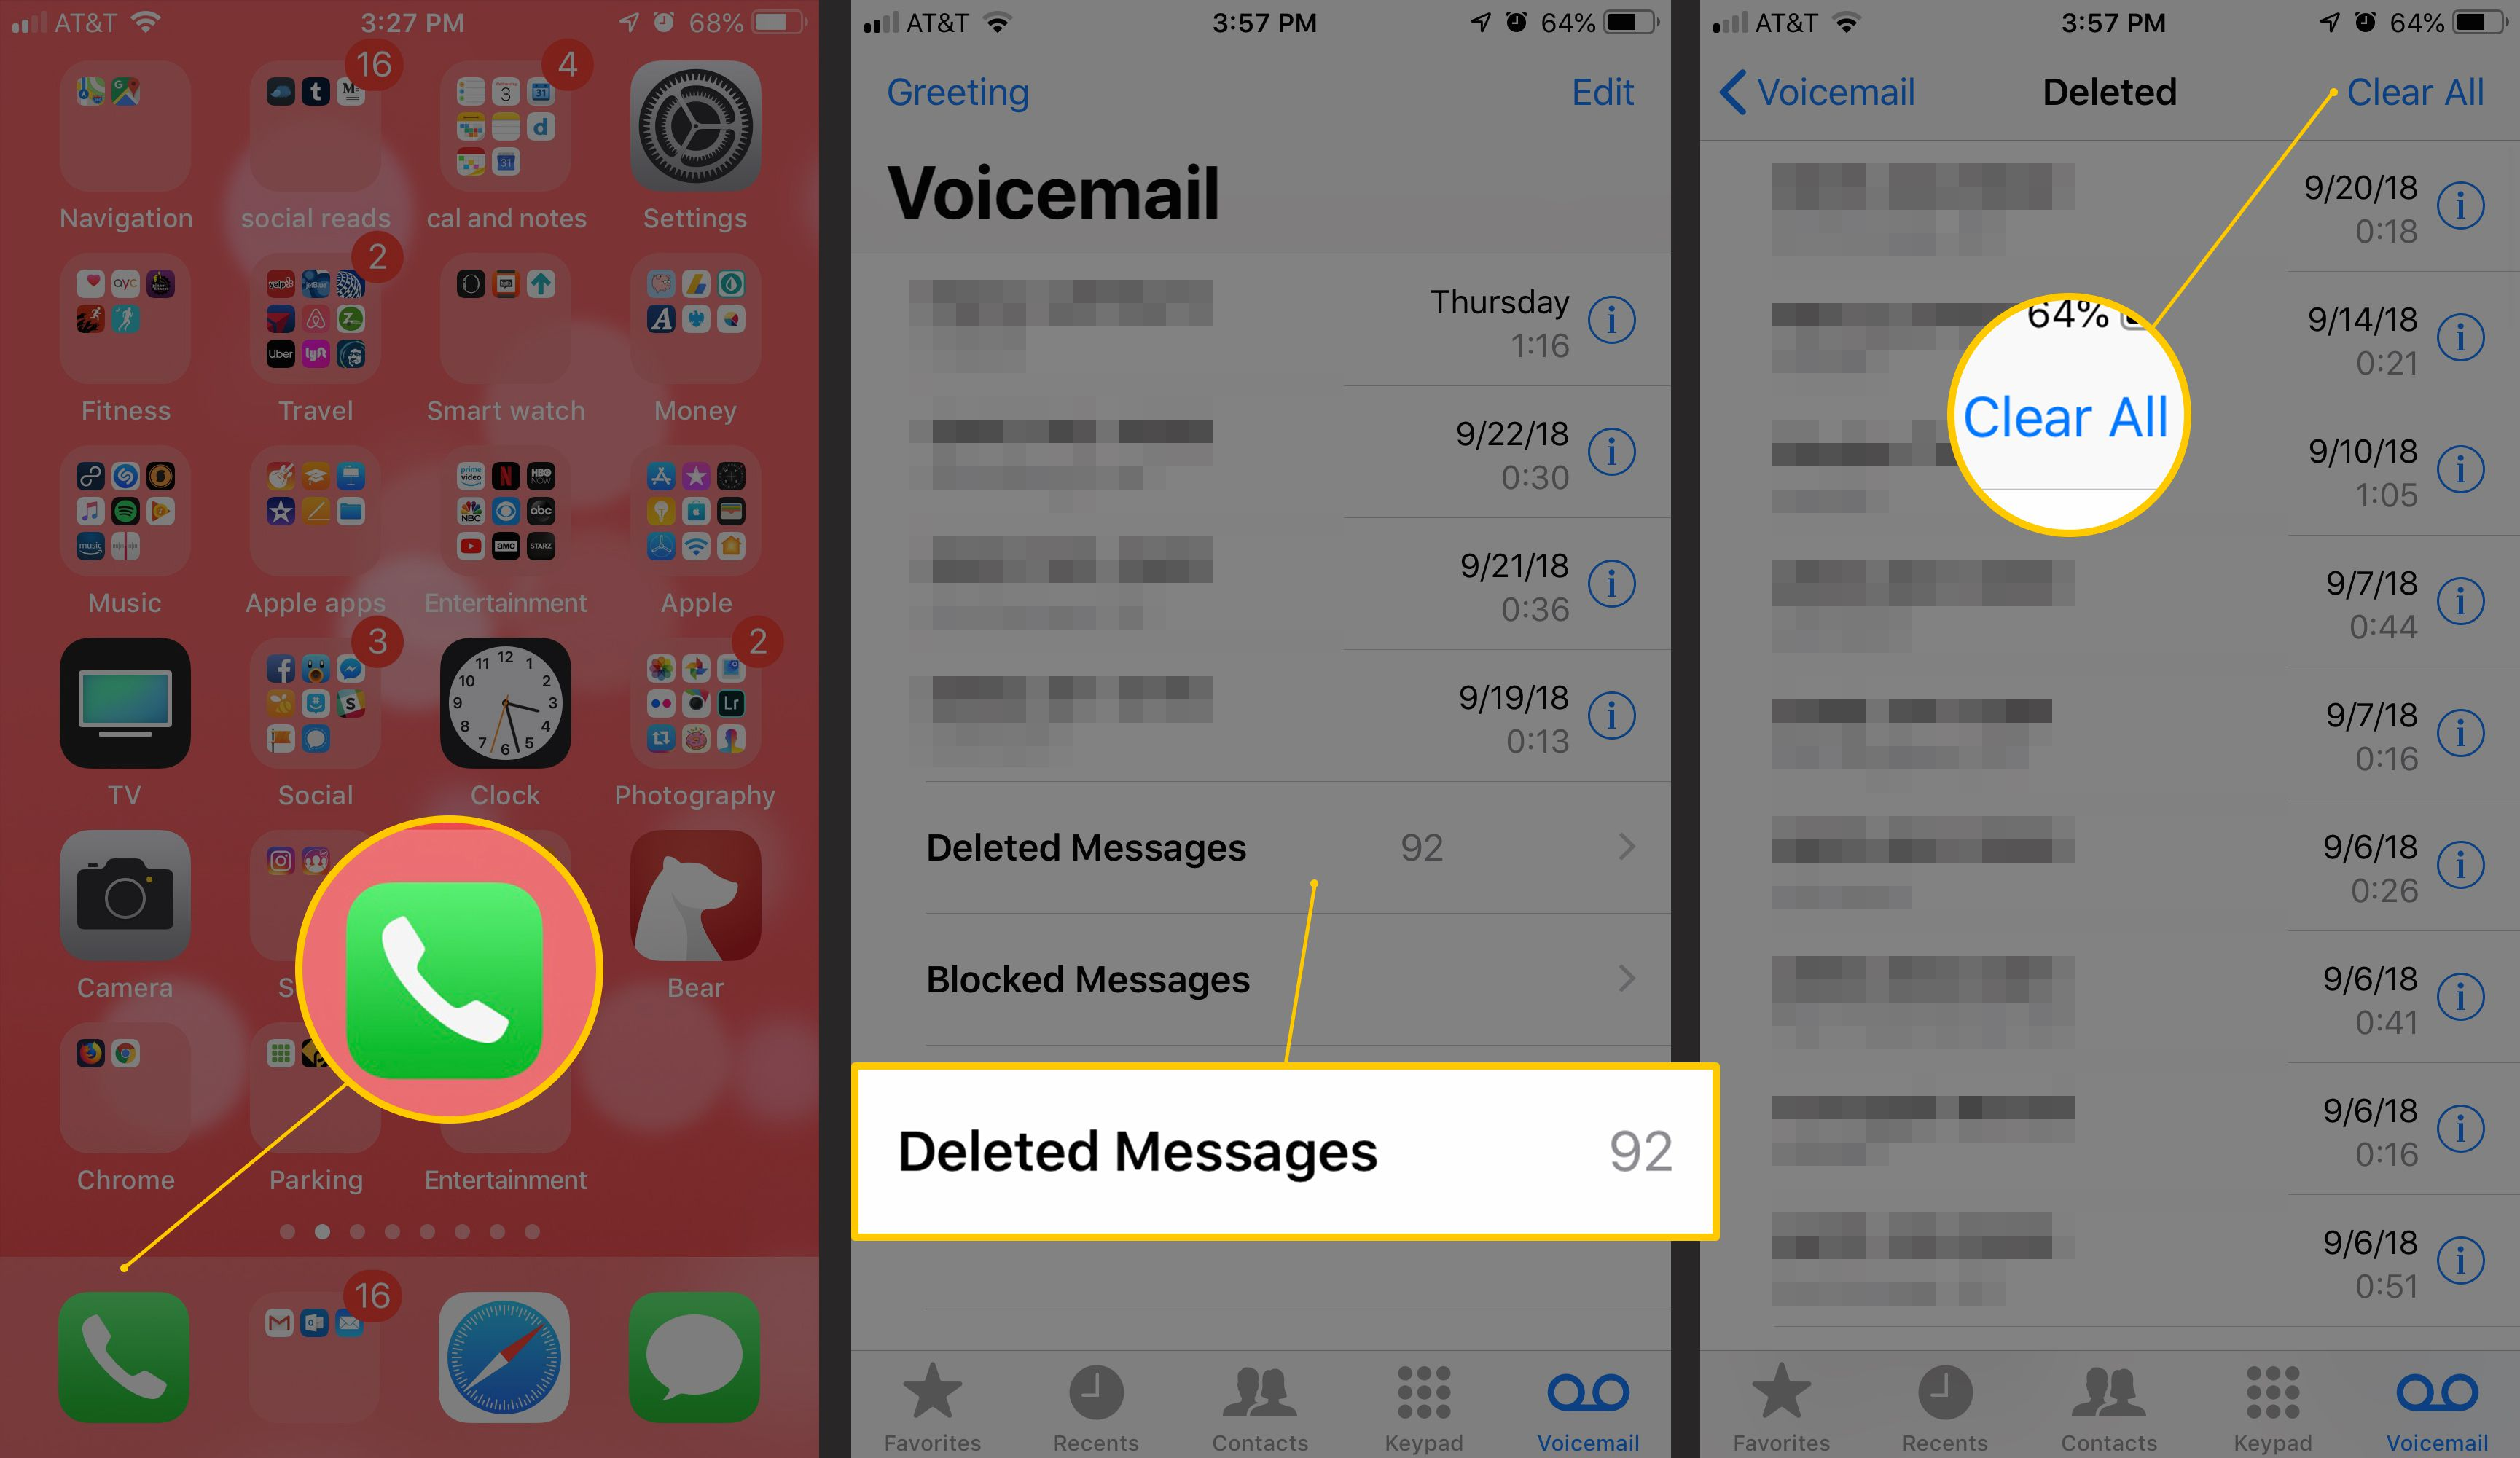 How to delete voicemail on iphone m4hsunfo